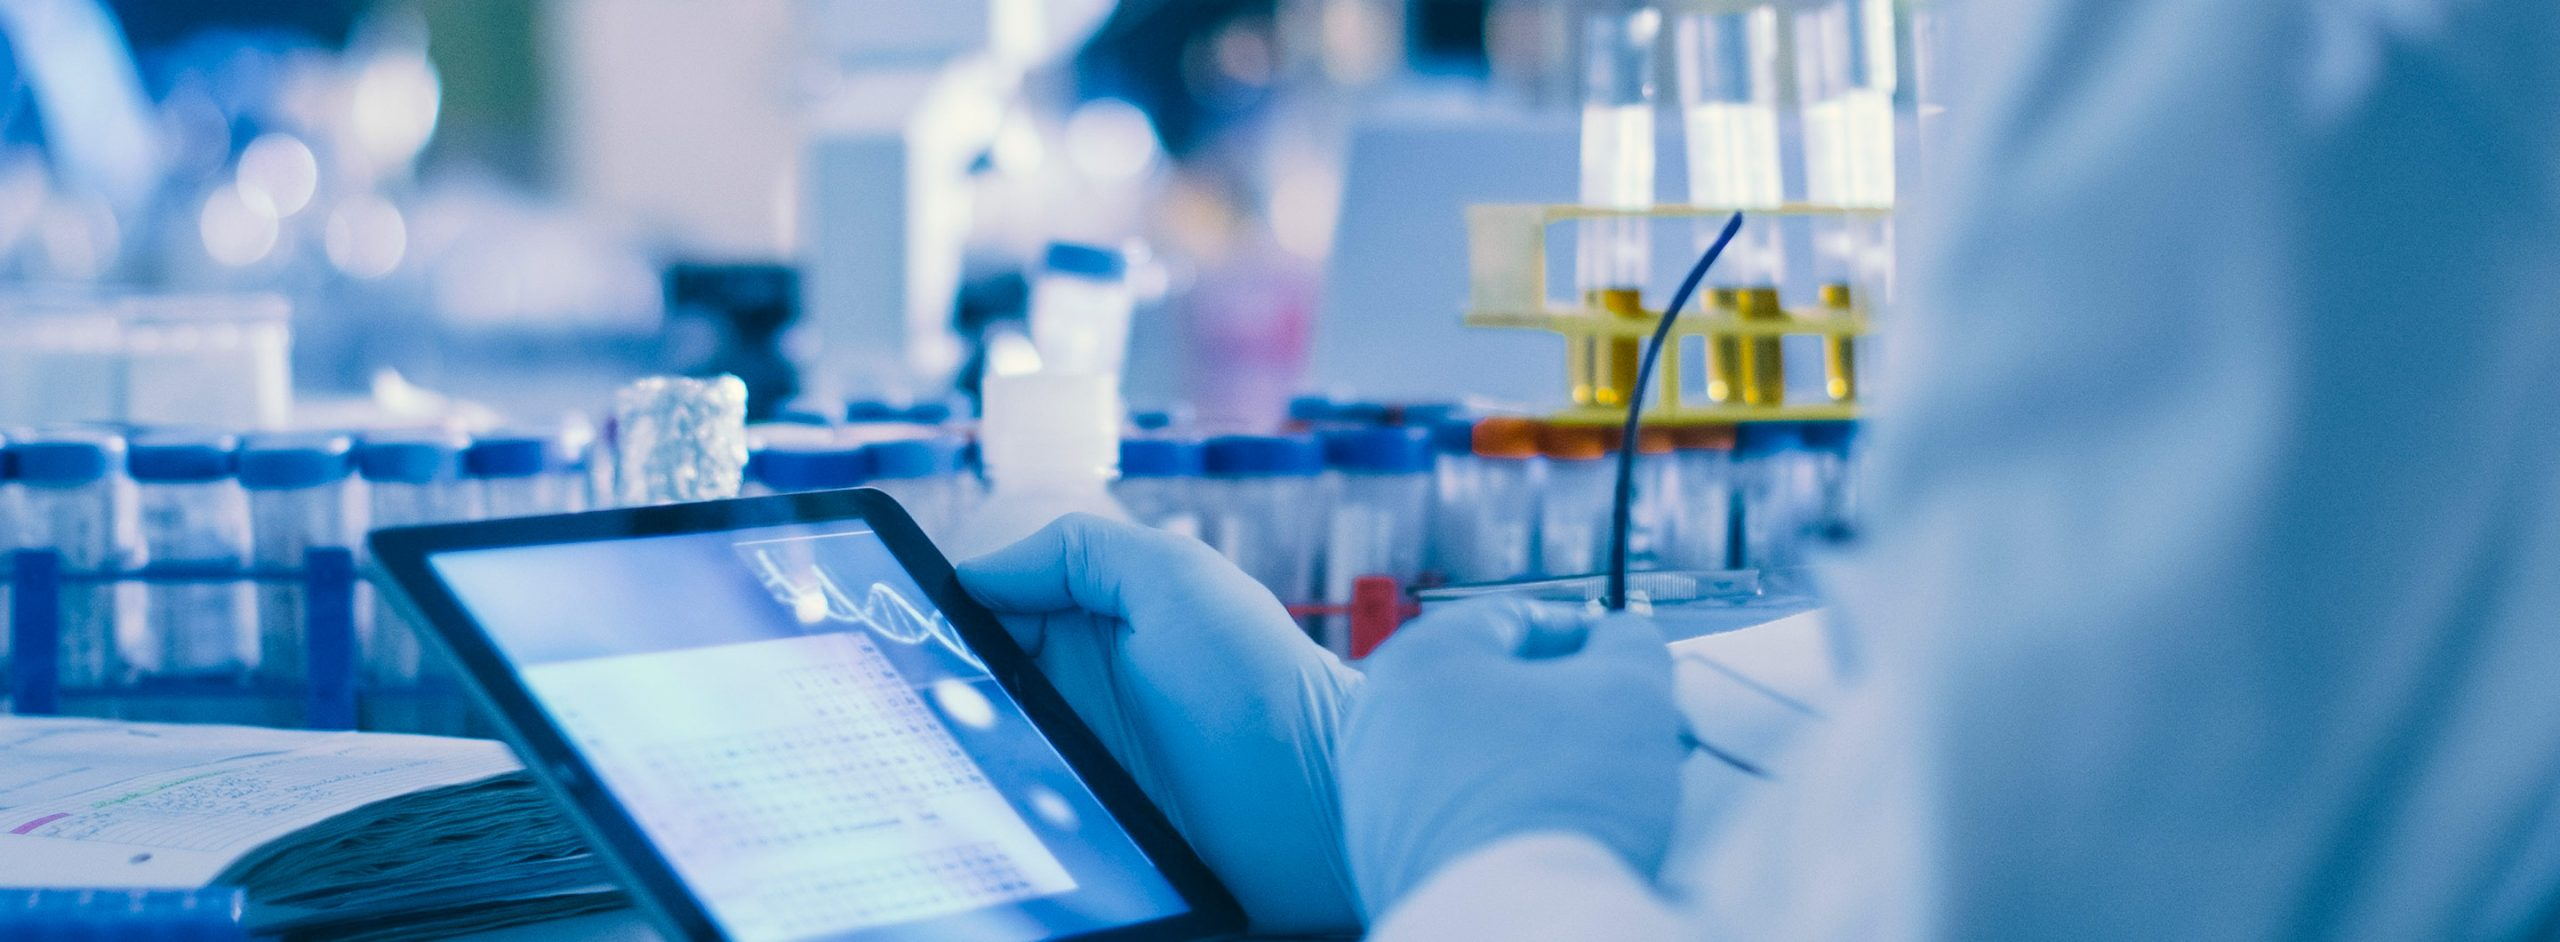 Machine Learning, a path to Accelerate Drug Development